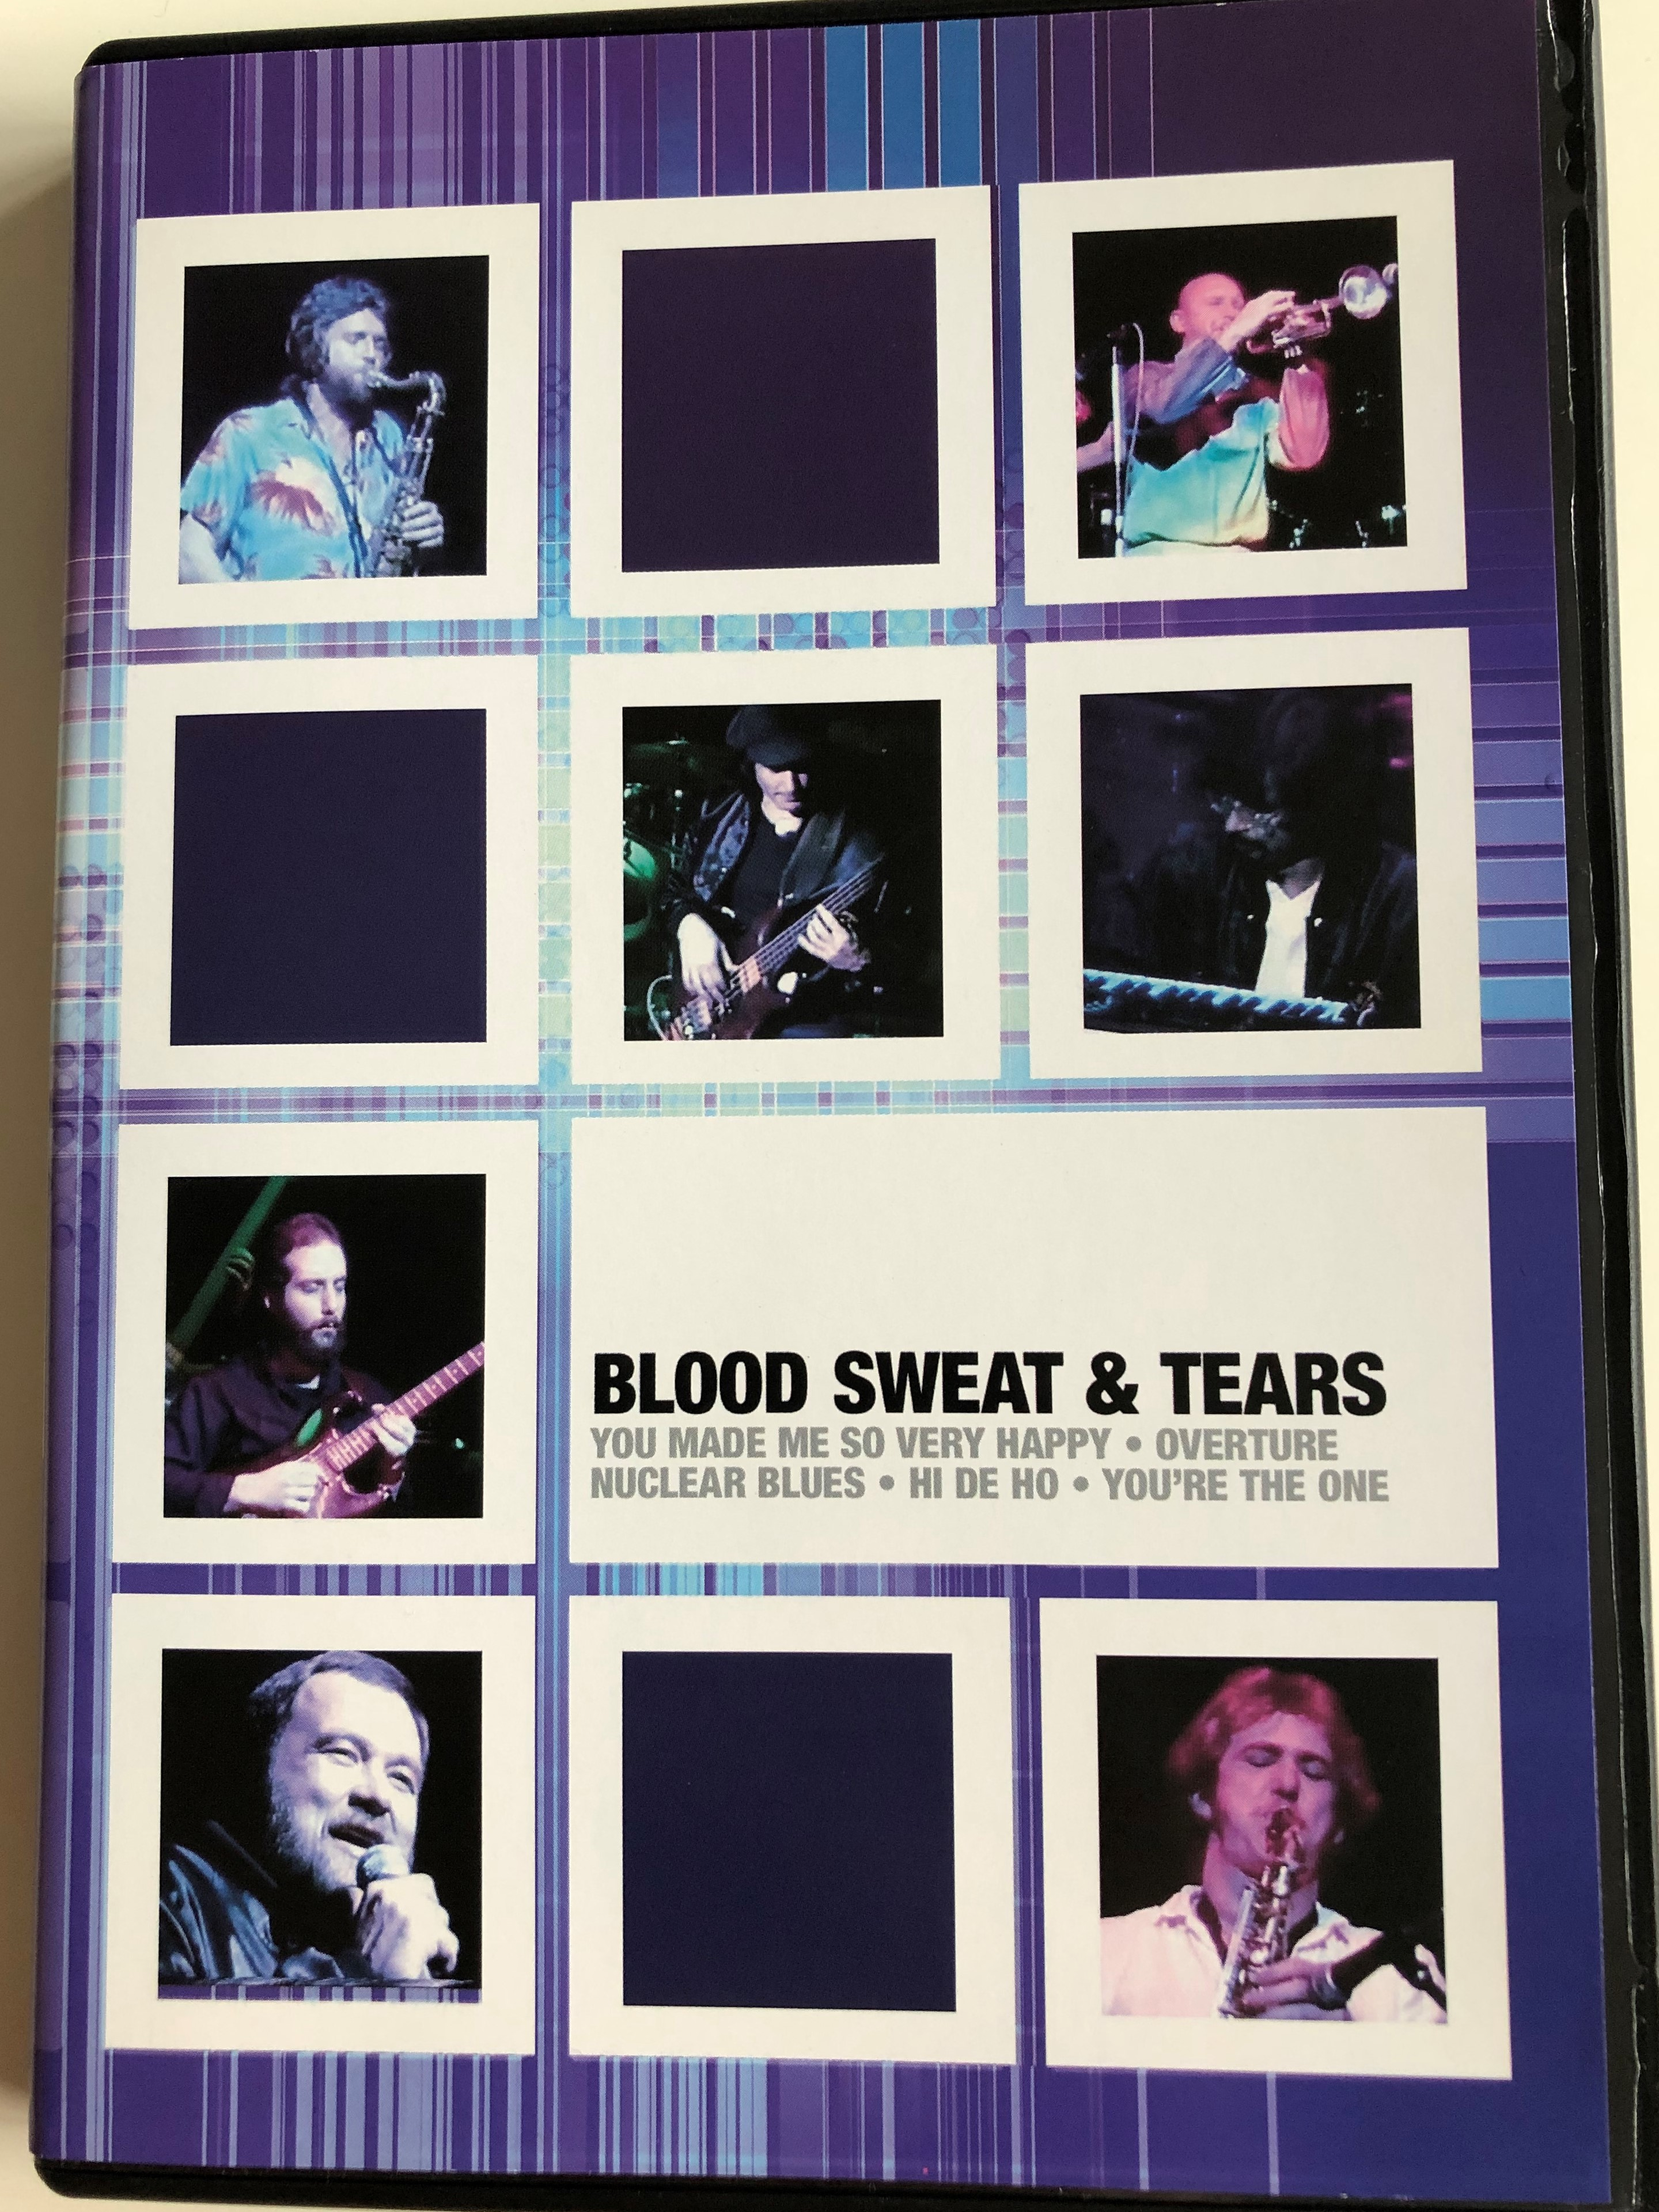 blood-sweat-tears-you-made-me-so-very-happy-overture-nuclear-blues-hi-de-ho-you-re-the-one-civic-theatre-halifax-air017dvd-1-.jpg